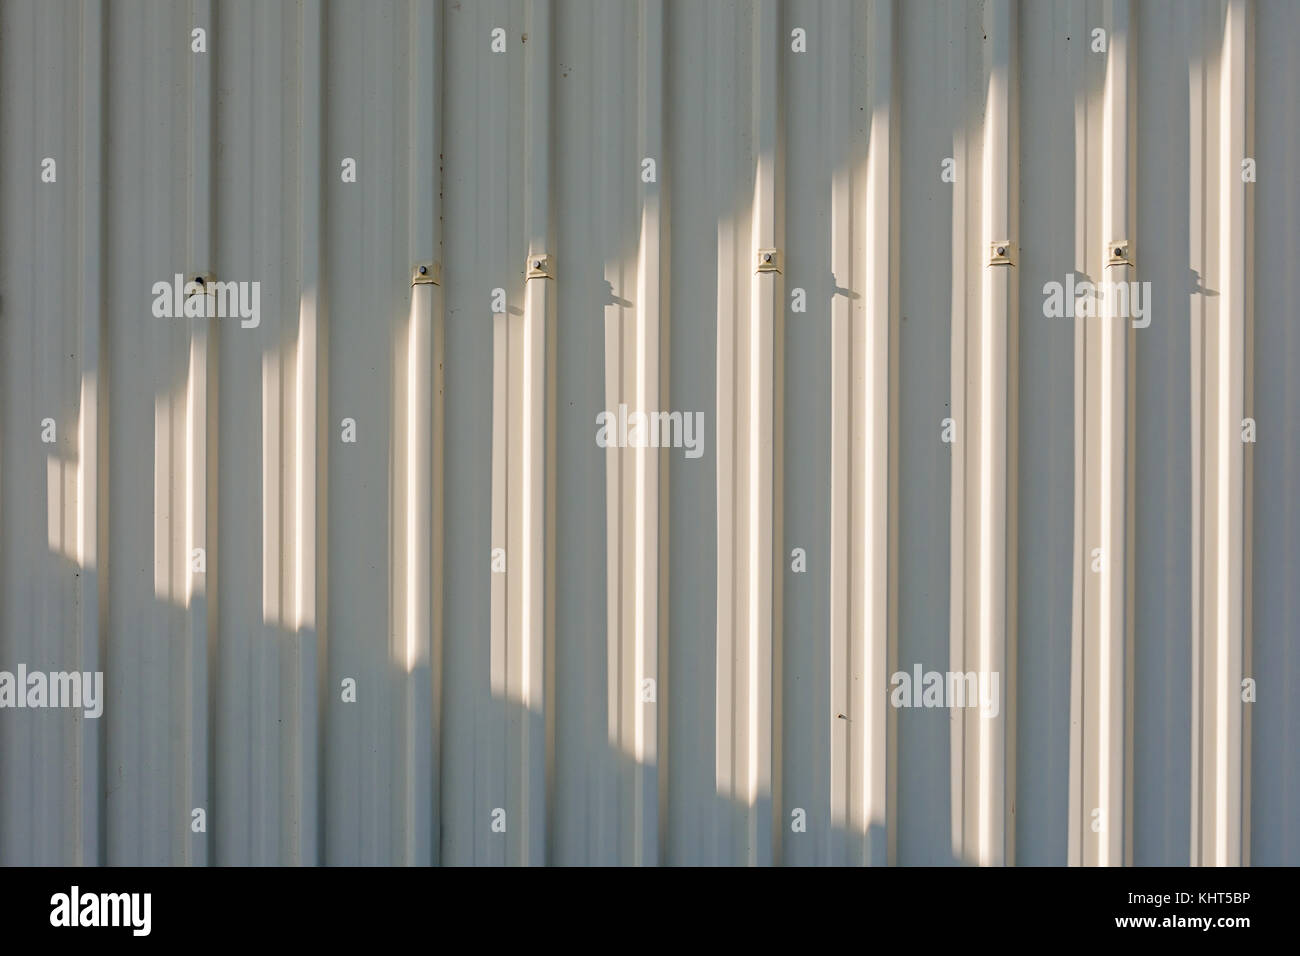 Aluminium clad wall of building - France. - Stock Image